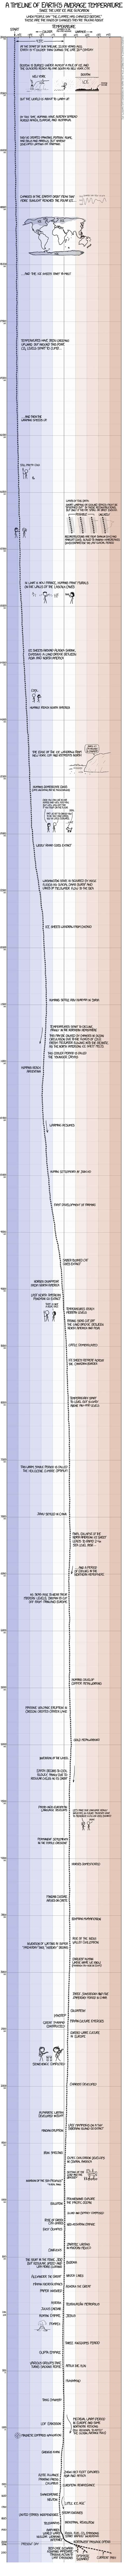 earth_temperature_timeline-4